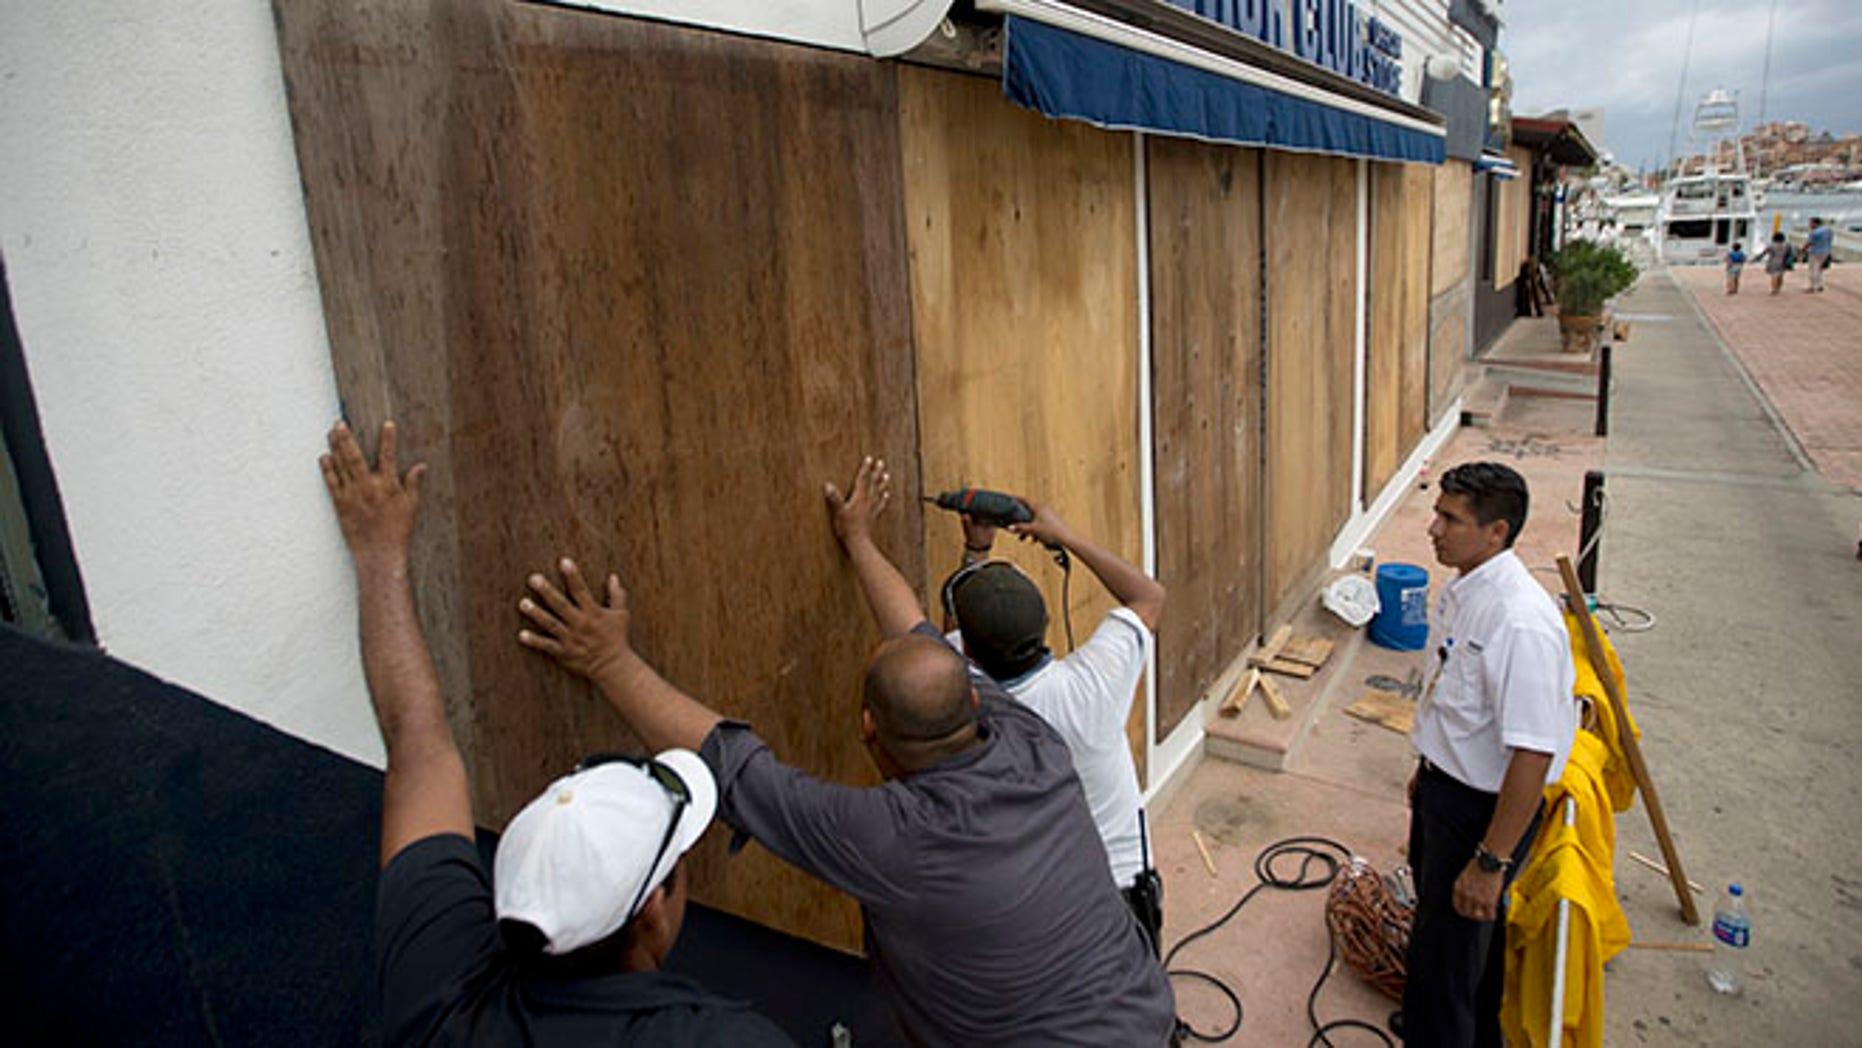 Workers board over a store front in preparation for Hurricane Newton, in Cabo San Lucas, Mexico, Monday Sept. 5, 2016. Authorities at the southern end of Mexico's Baja California peninsula ordered schools closed and set up emergency shelters as Hurricane Newton gained strength while bearing down on the twin resorts of Los Cabos for a predicted arrival Tuesday morning. (AP Photo/Eduardo Verdugo)